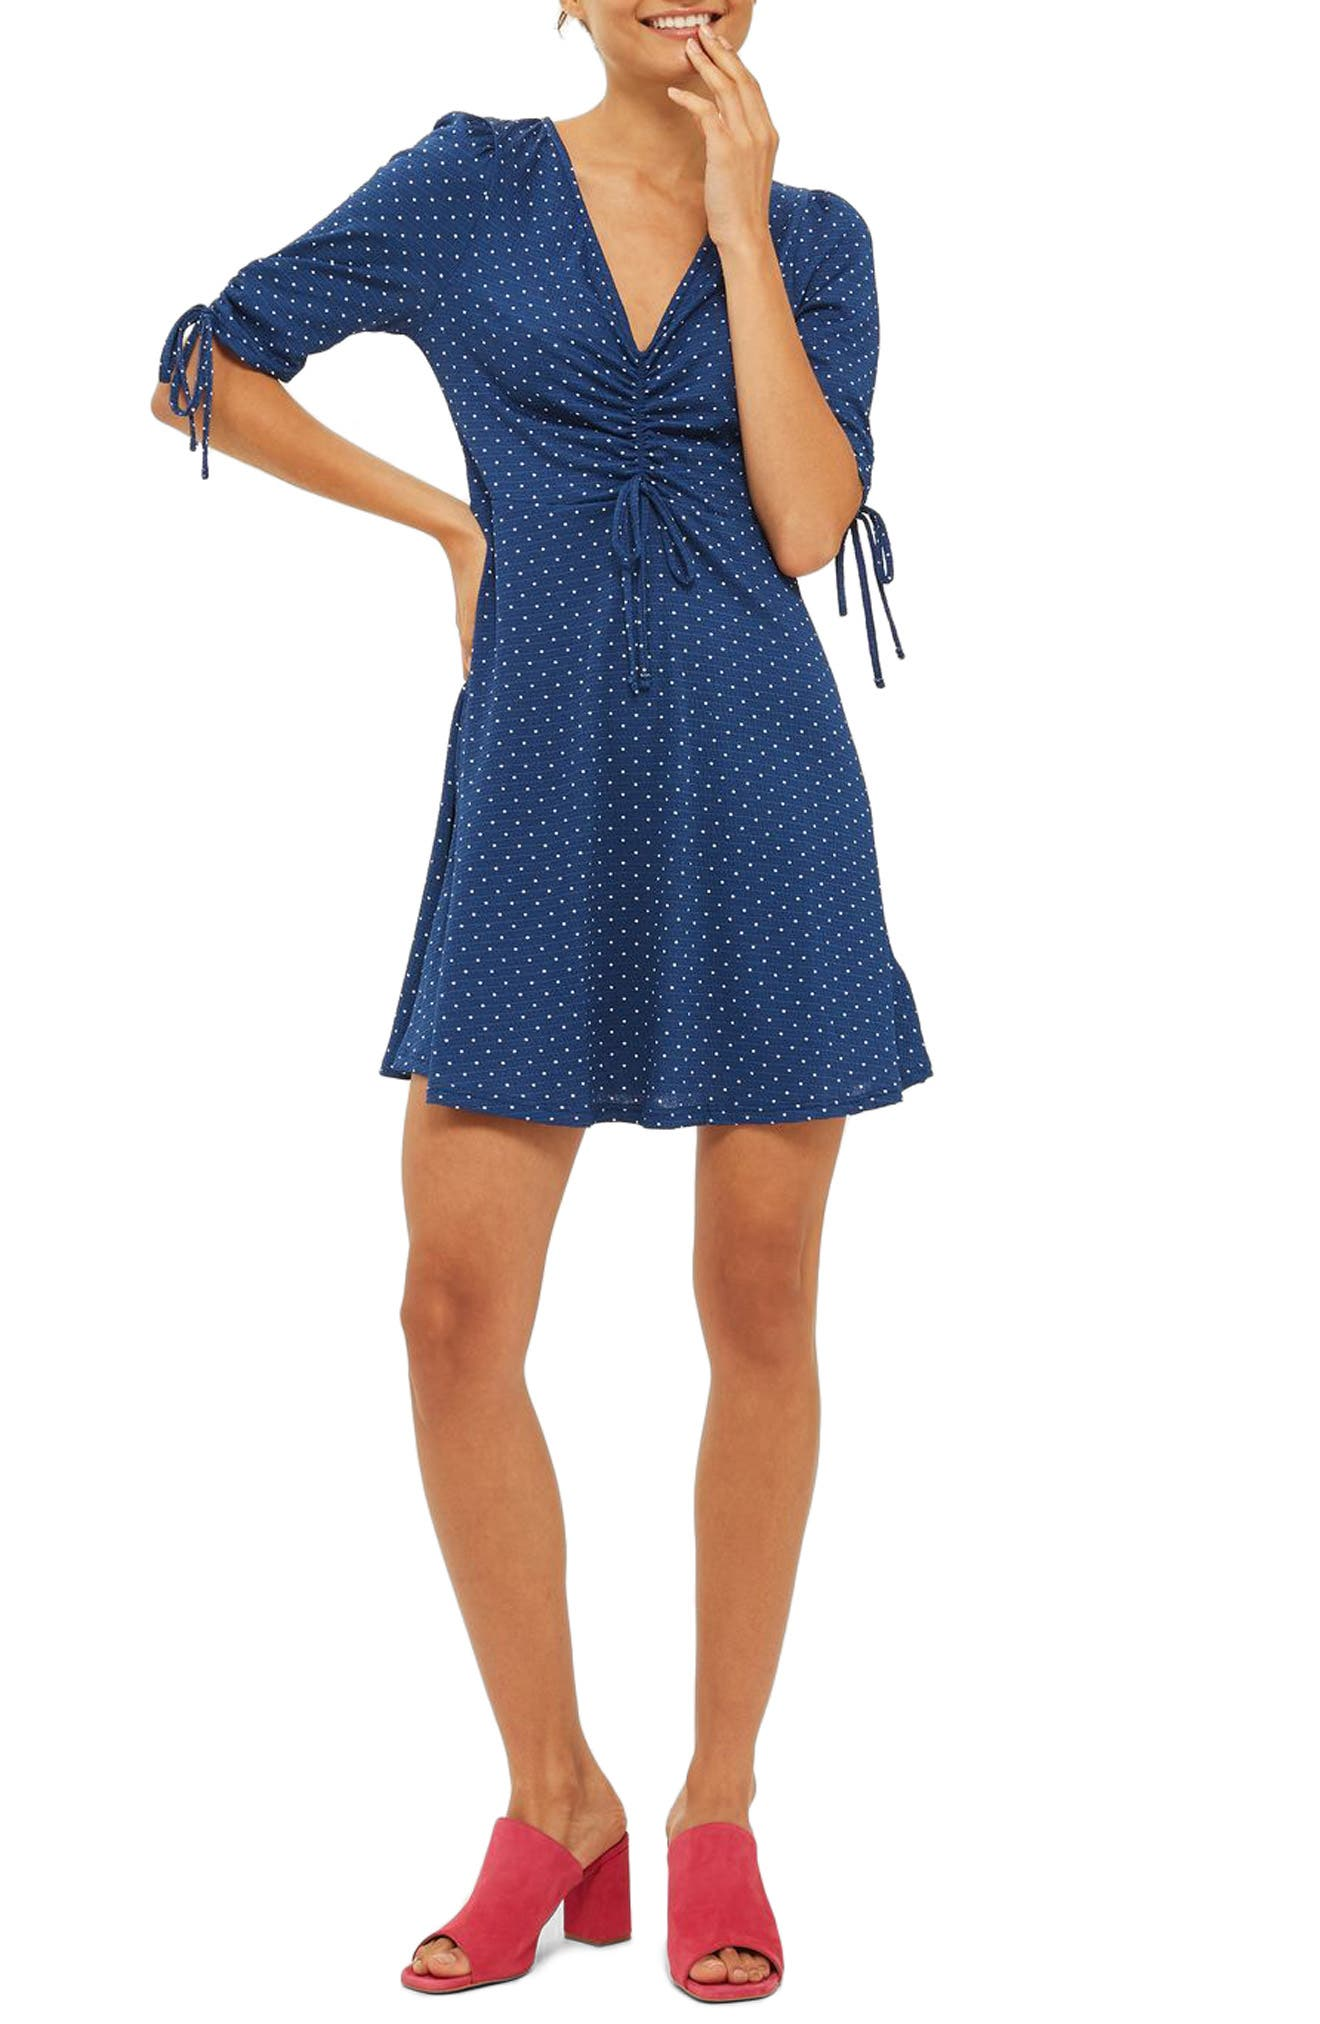 Polka Dot Tea Dress,                         Main,                         color, Navy Blue Multi